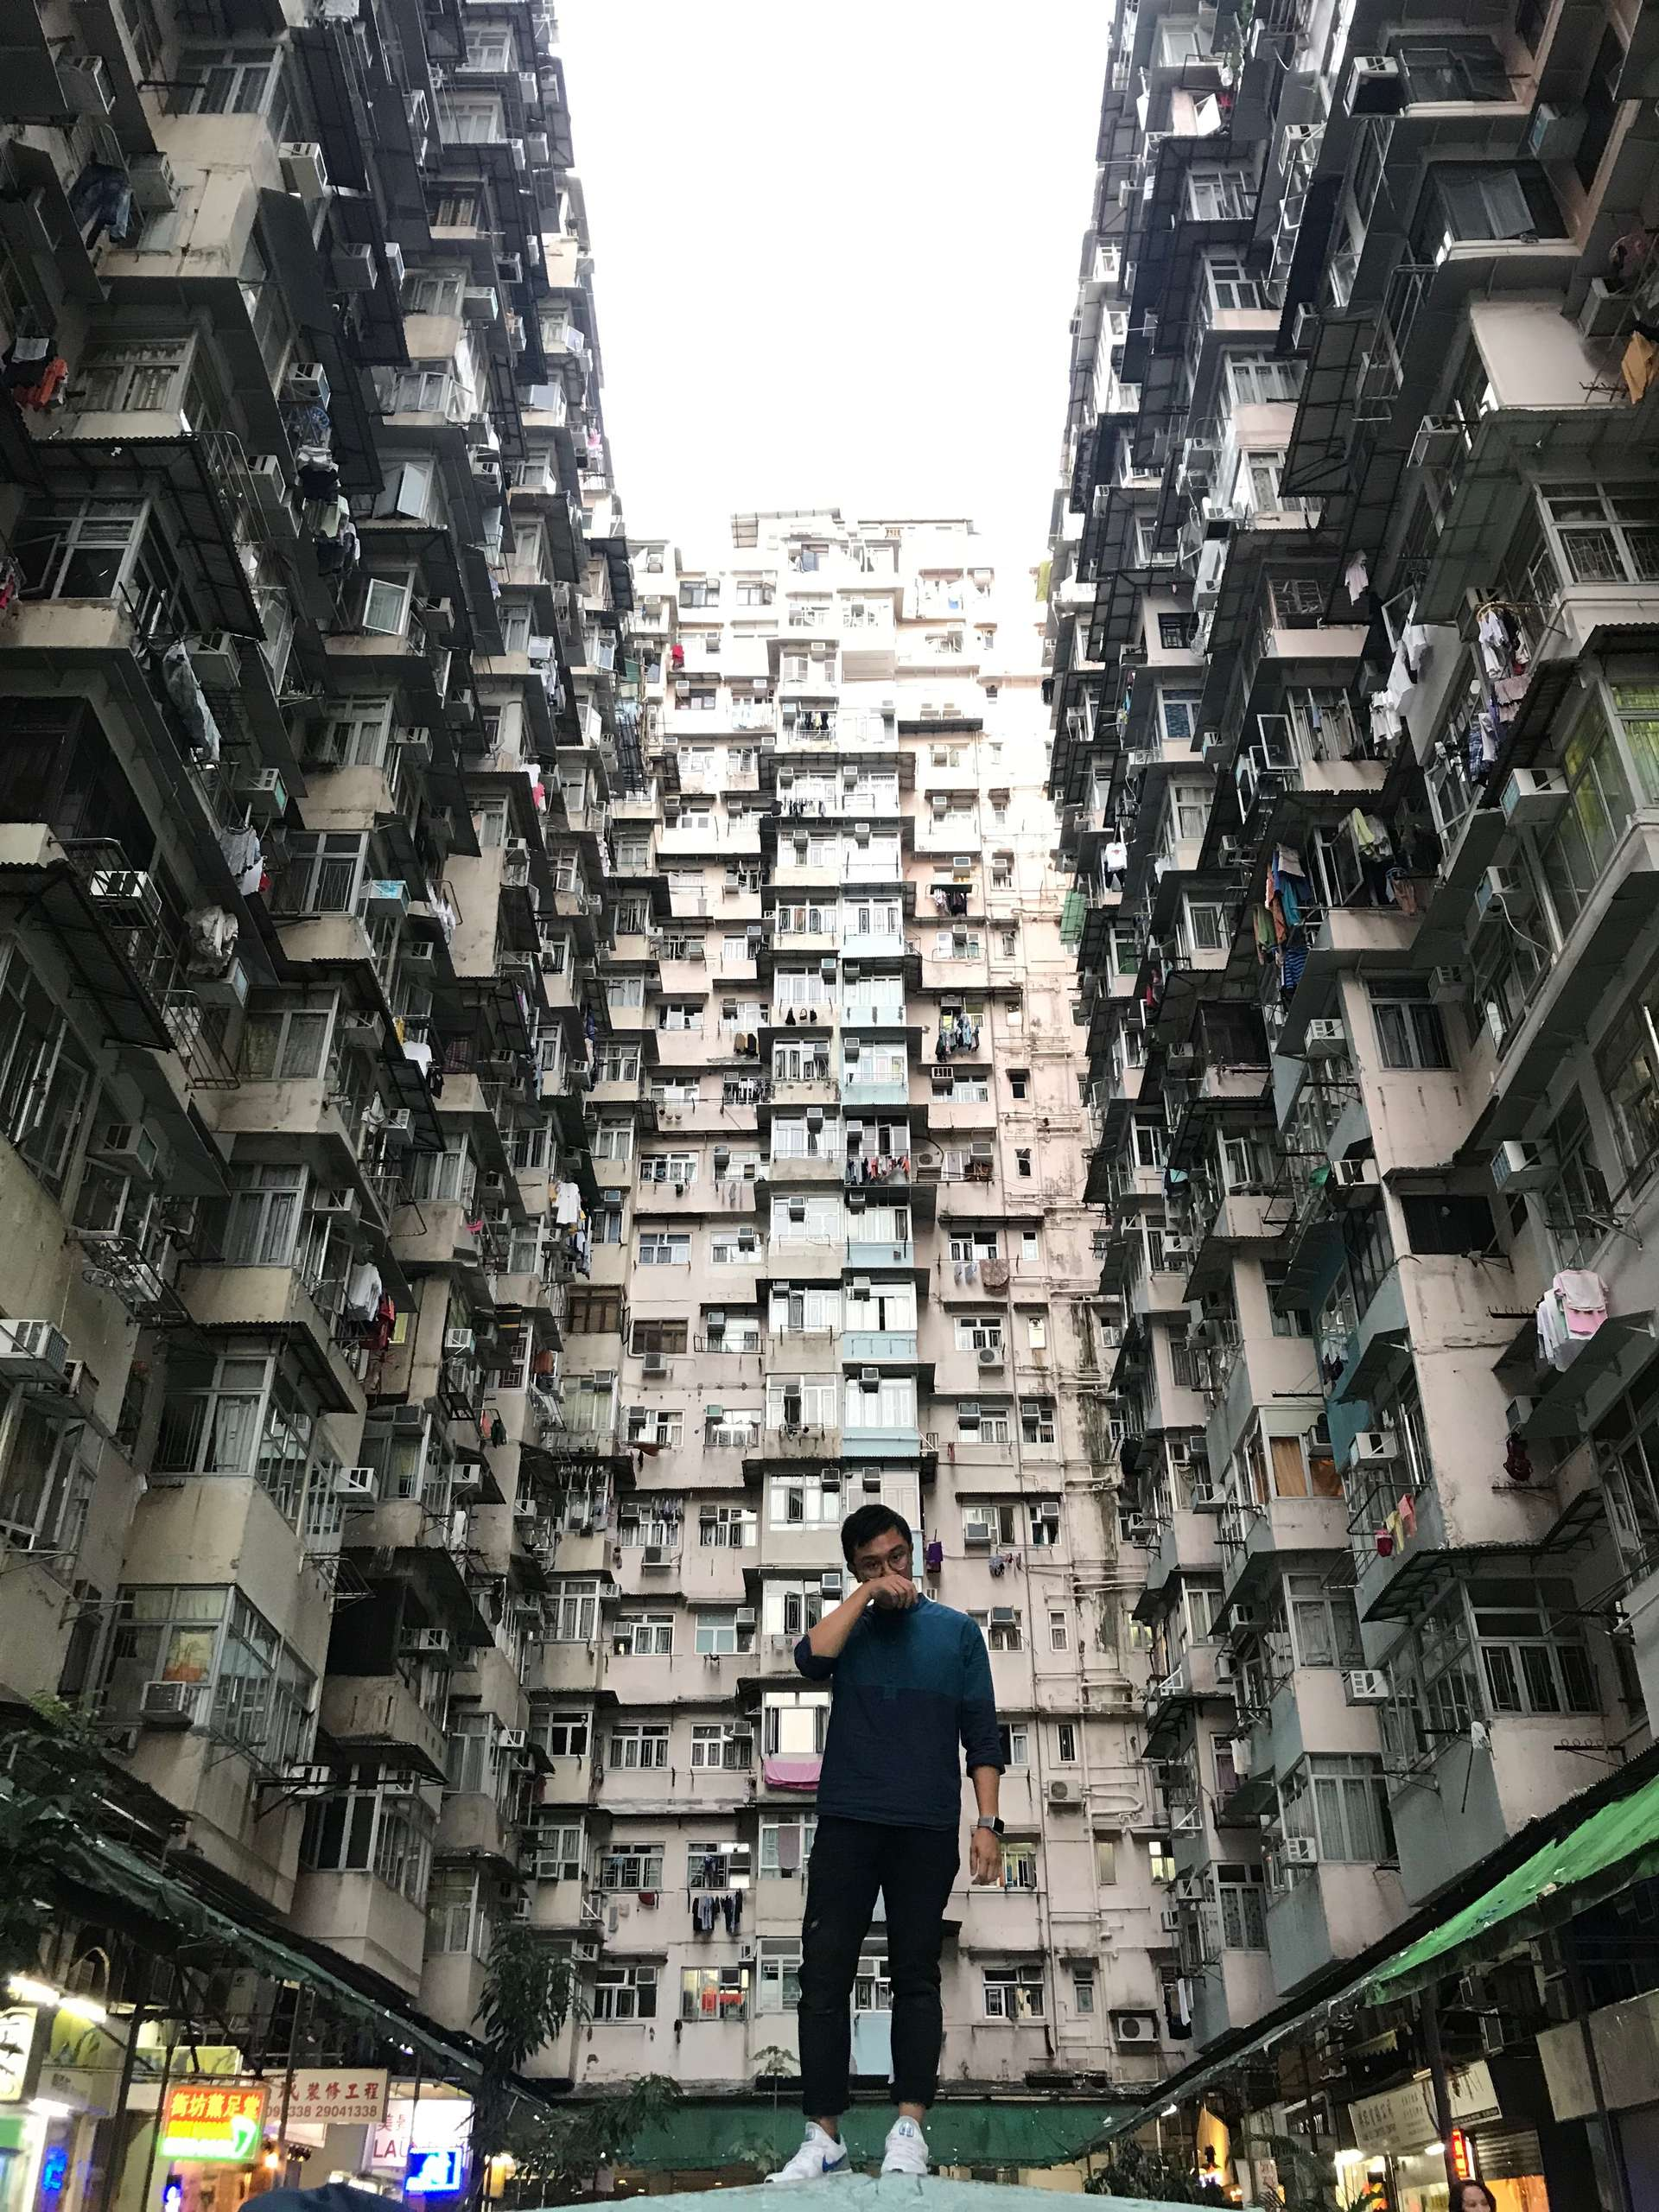 A young man posing with high residential blocks in background in Macau.